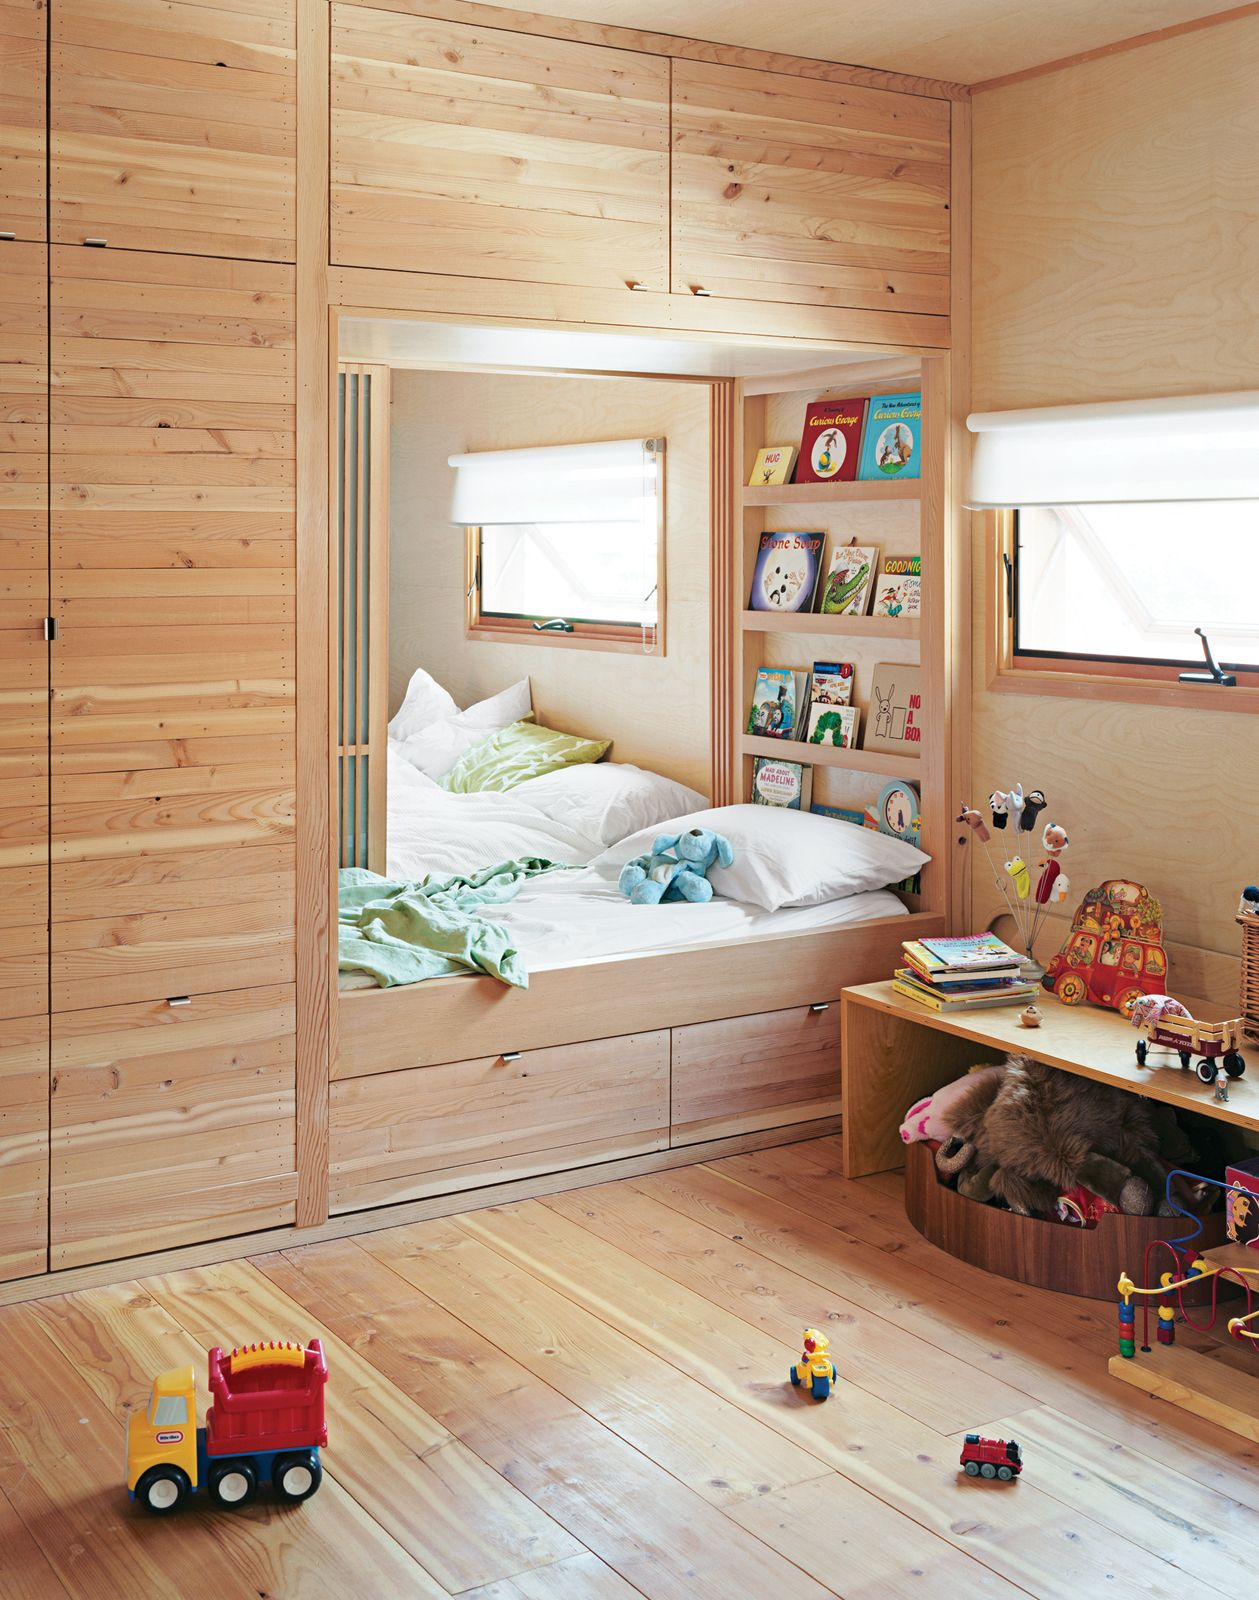 Tall loft bed with slide  two rooms separated only by sliding doors in between beds great for